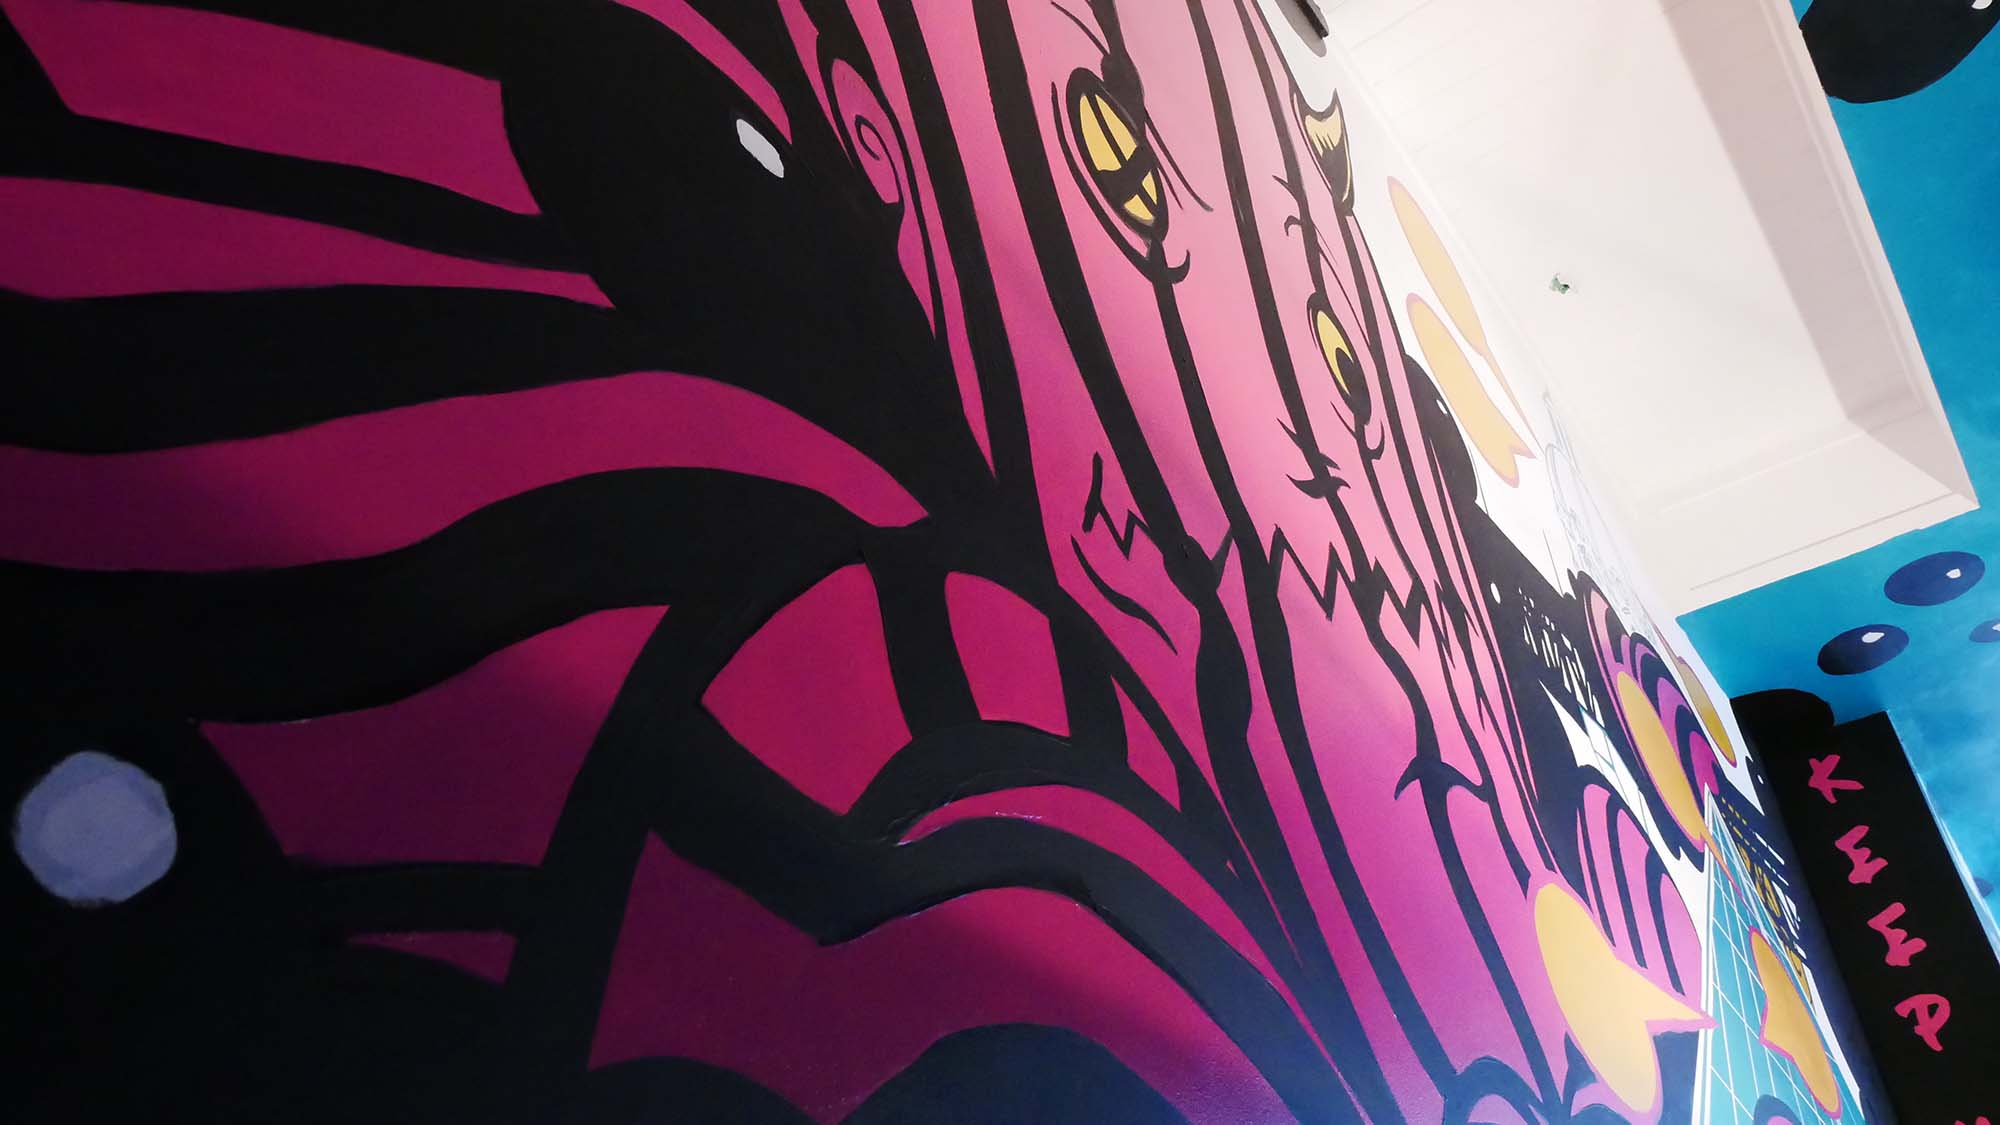 ReGrub Interior Mural - Octopus Takes Over Edmonton Close-Up